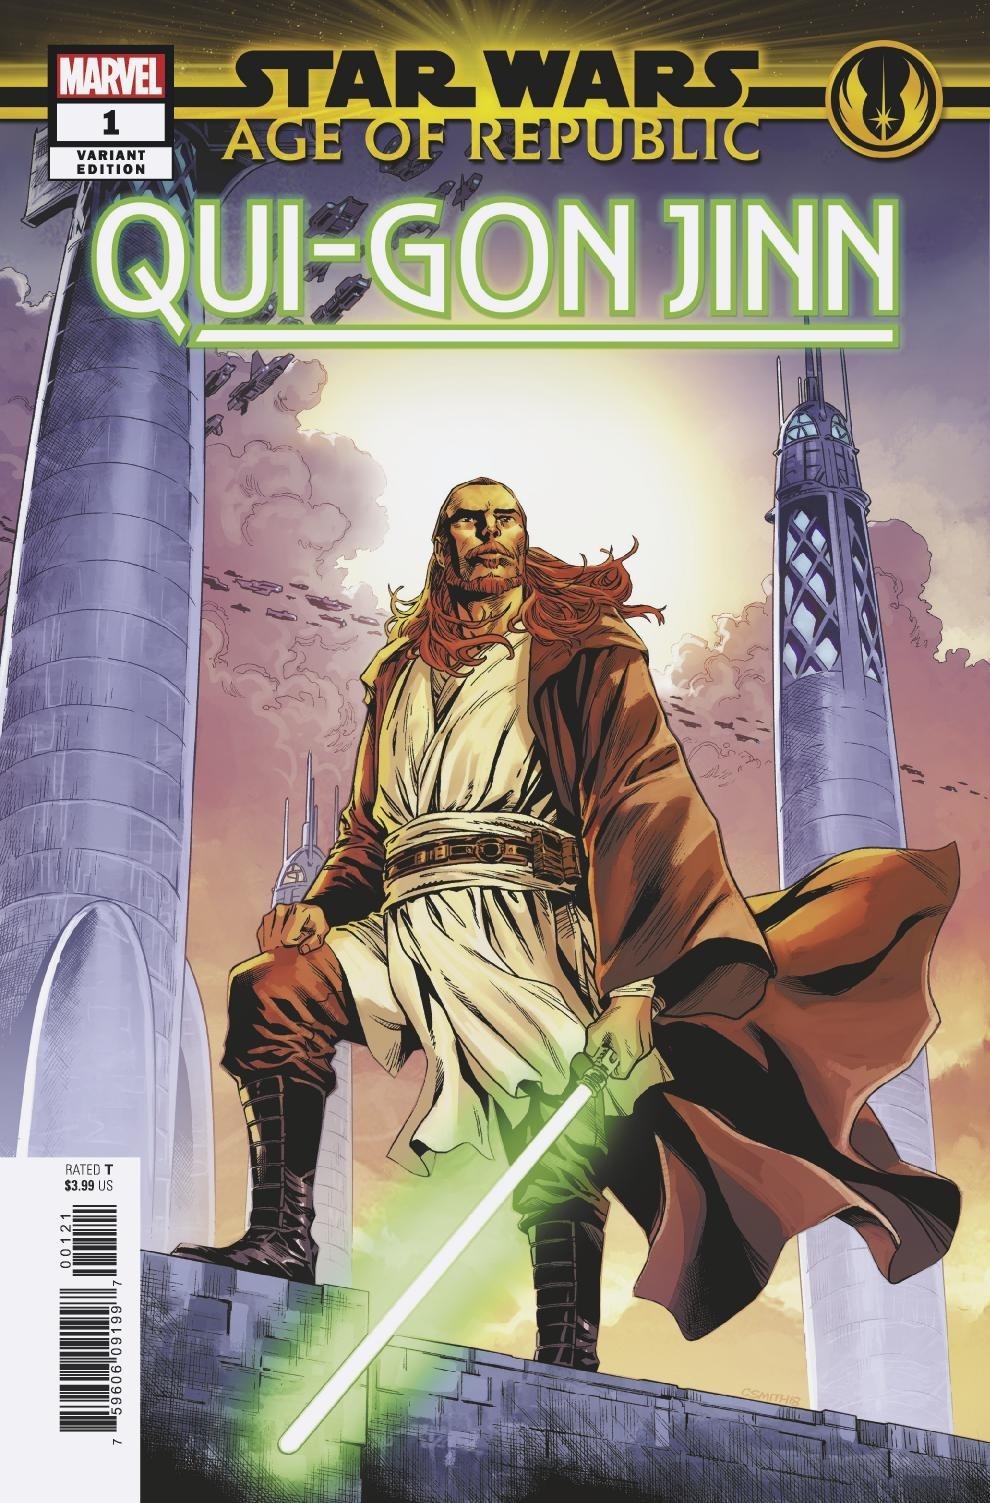 STAR WARS AGE REPUBLIC QUI-GON JINN #1 CORY SMITH VAR